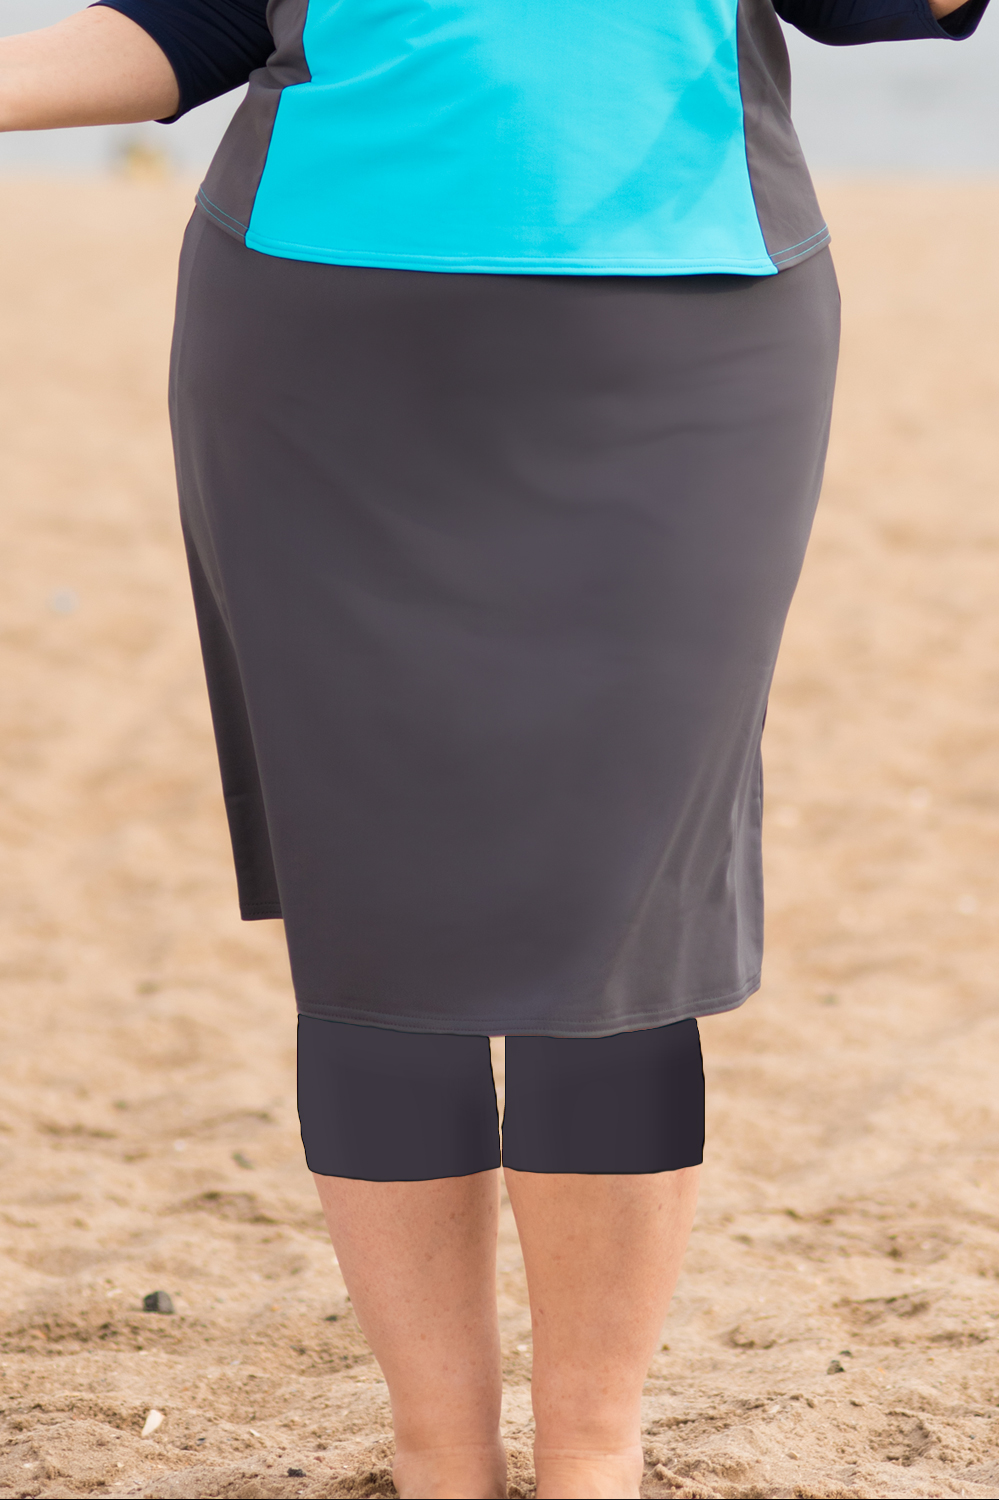 b11102f6f9f A-Line Swim Skirt – Comfortable enough to wear all day.